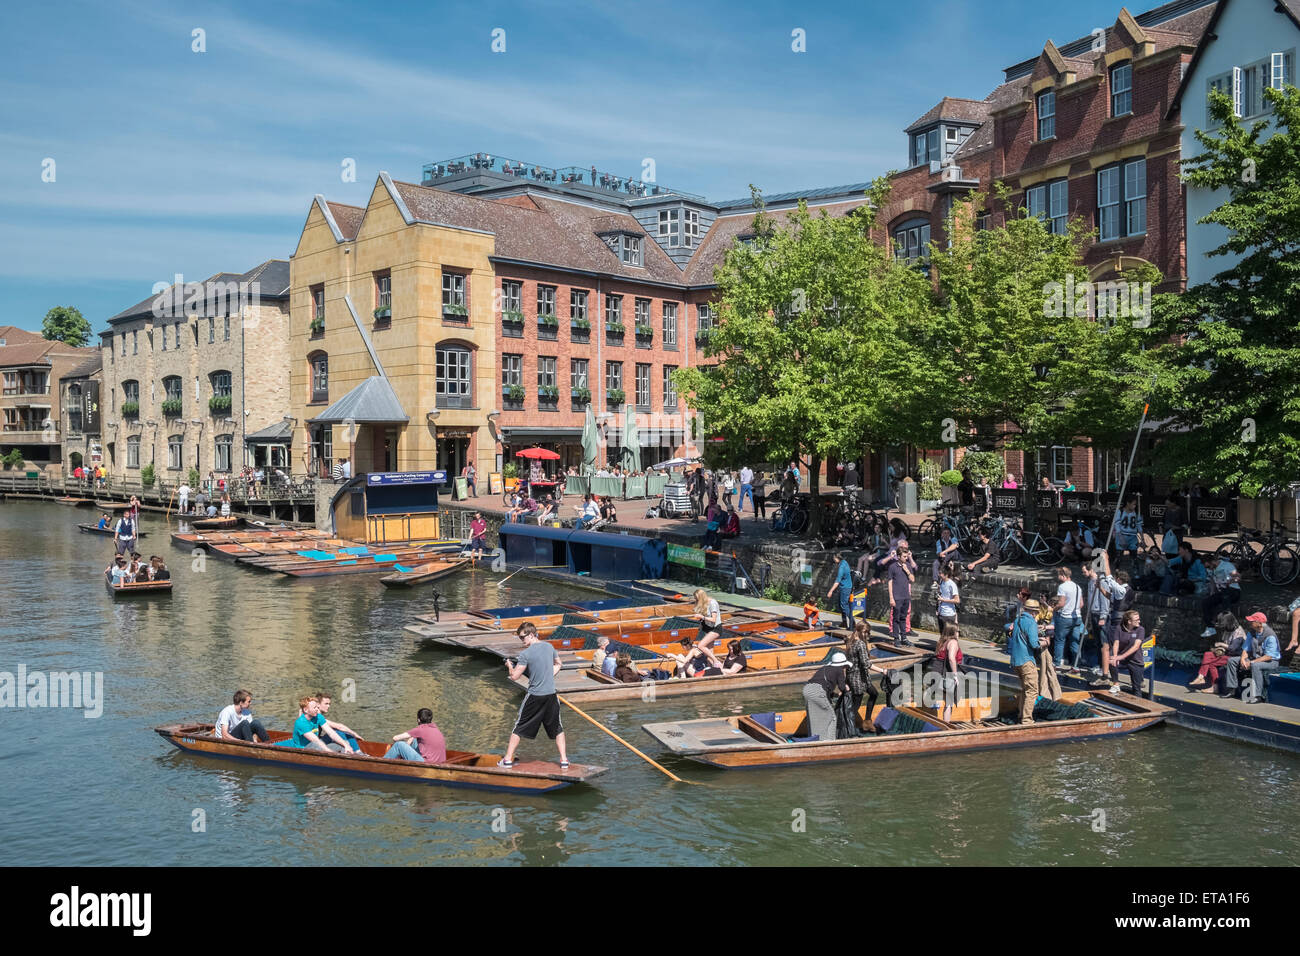 Popular tourist area on River Cam, Cambridge, England UK. - Stock Image